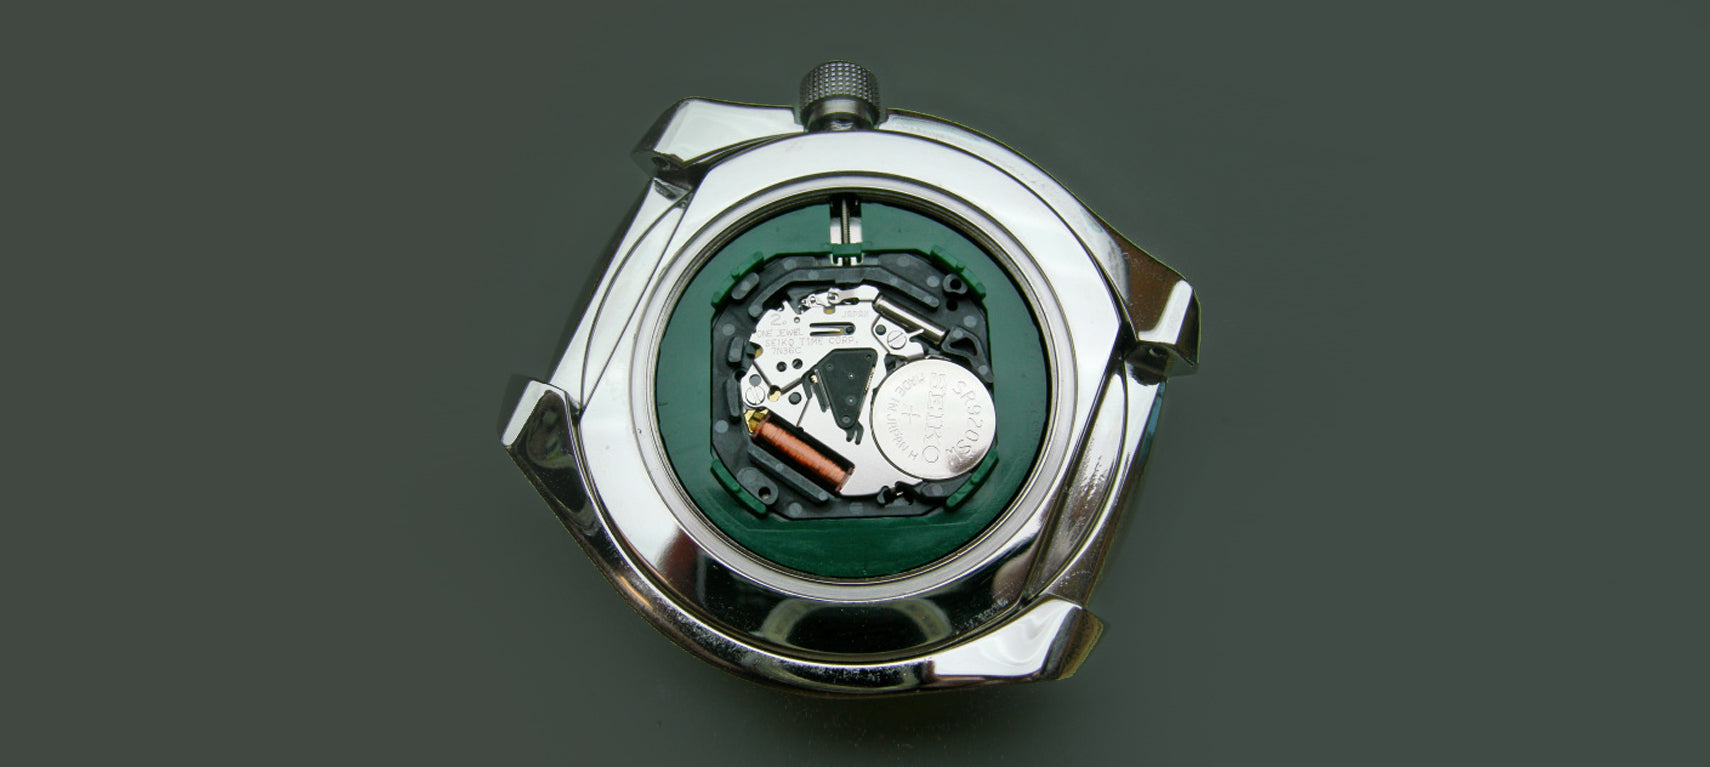 Tribus-Watches-History-Blog-5